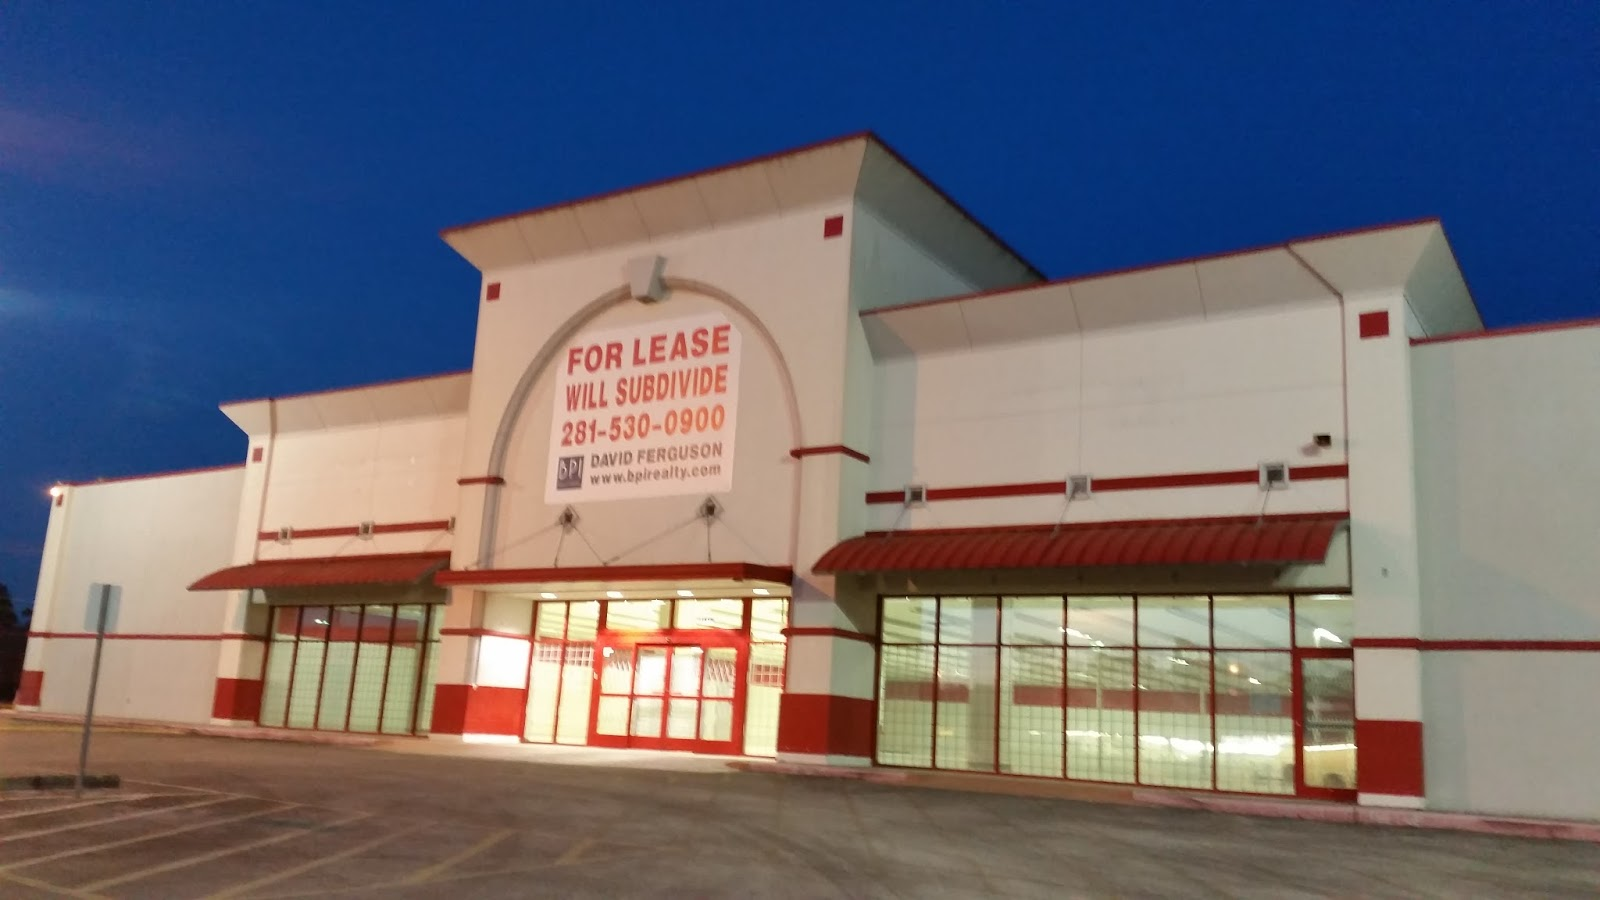 99 Cent Only Store Kmart Houston Homestead Rd Closed In The 1990s Most Recently Used As A Flea Market And Abandoned Early 2000s